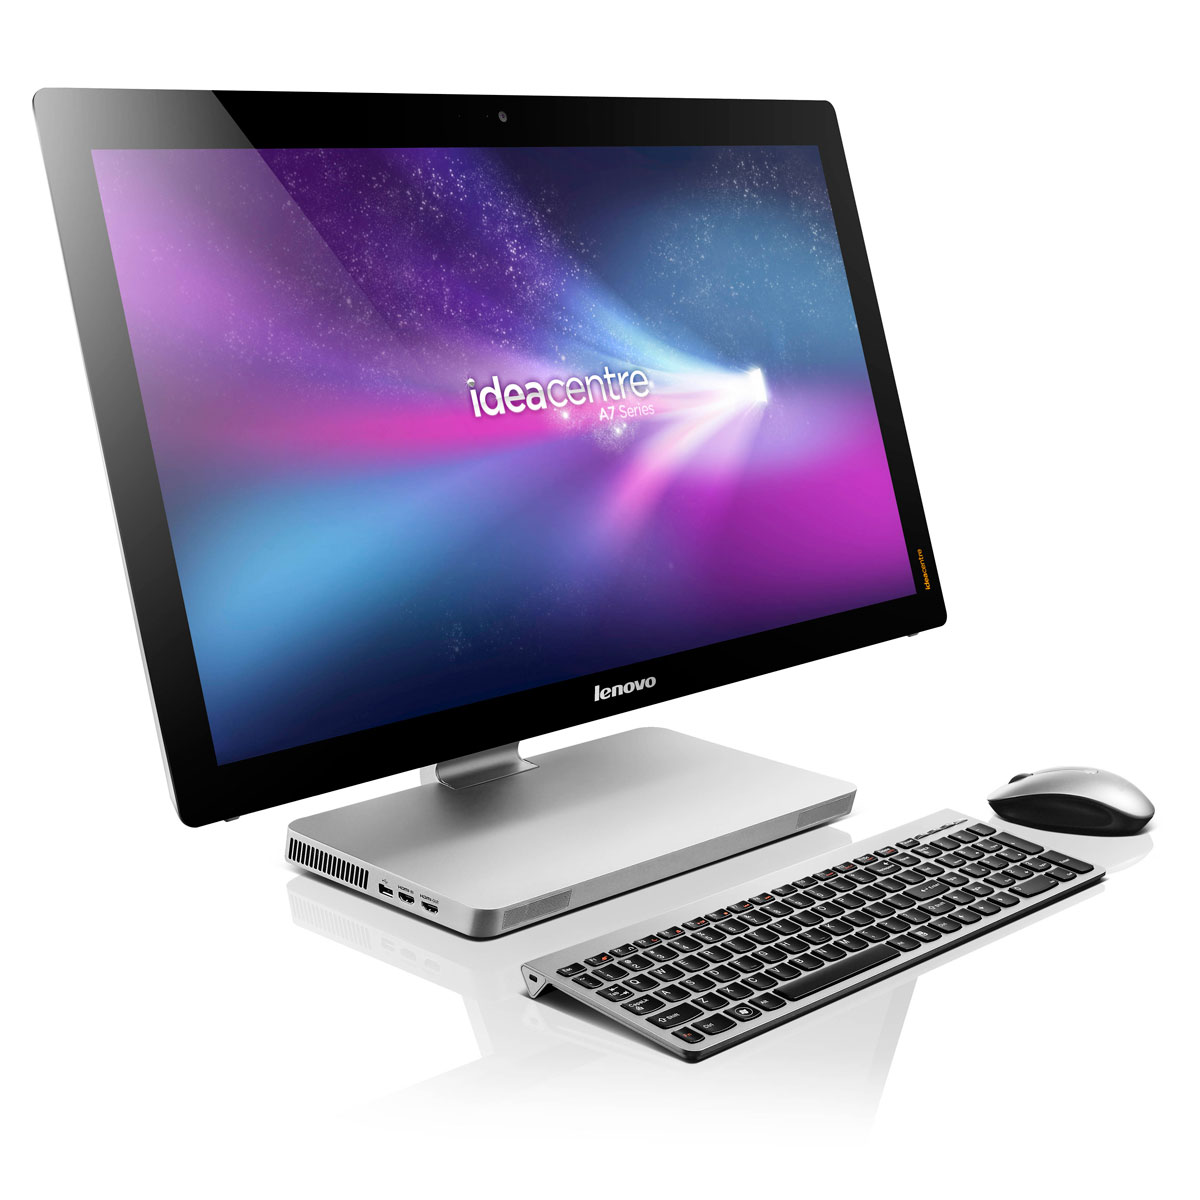 Meuble Tv Ordinateur Lenovo Ideacentre A730 (57315692) - Pc De Bureau Lenovo